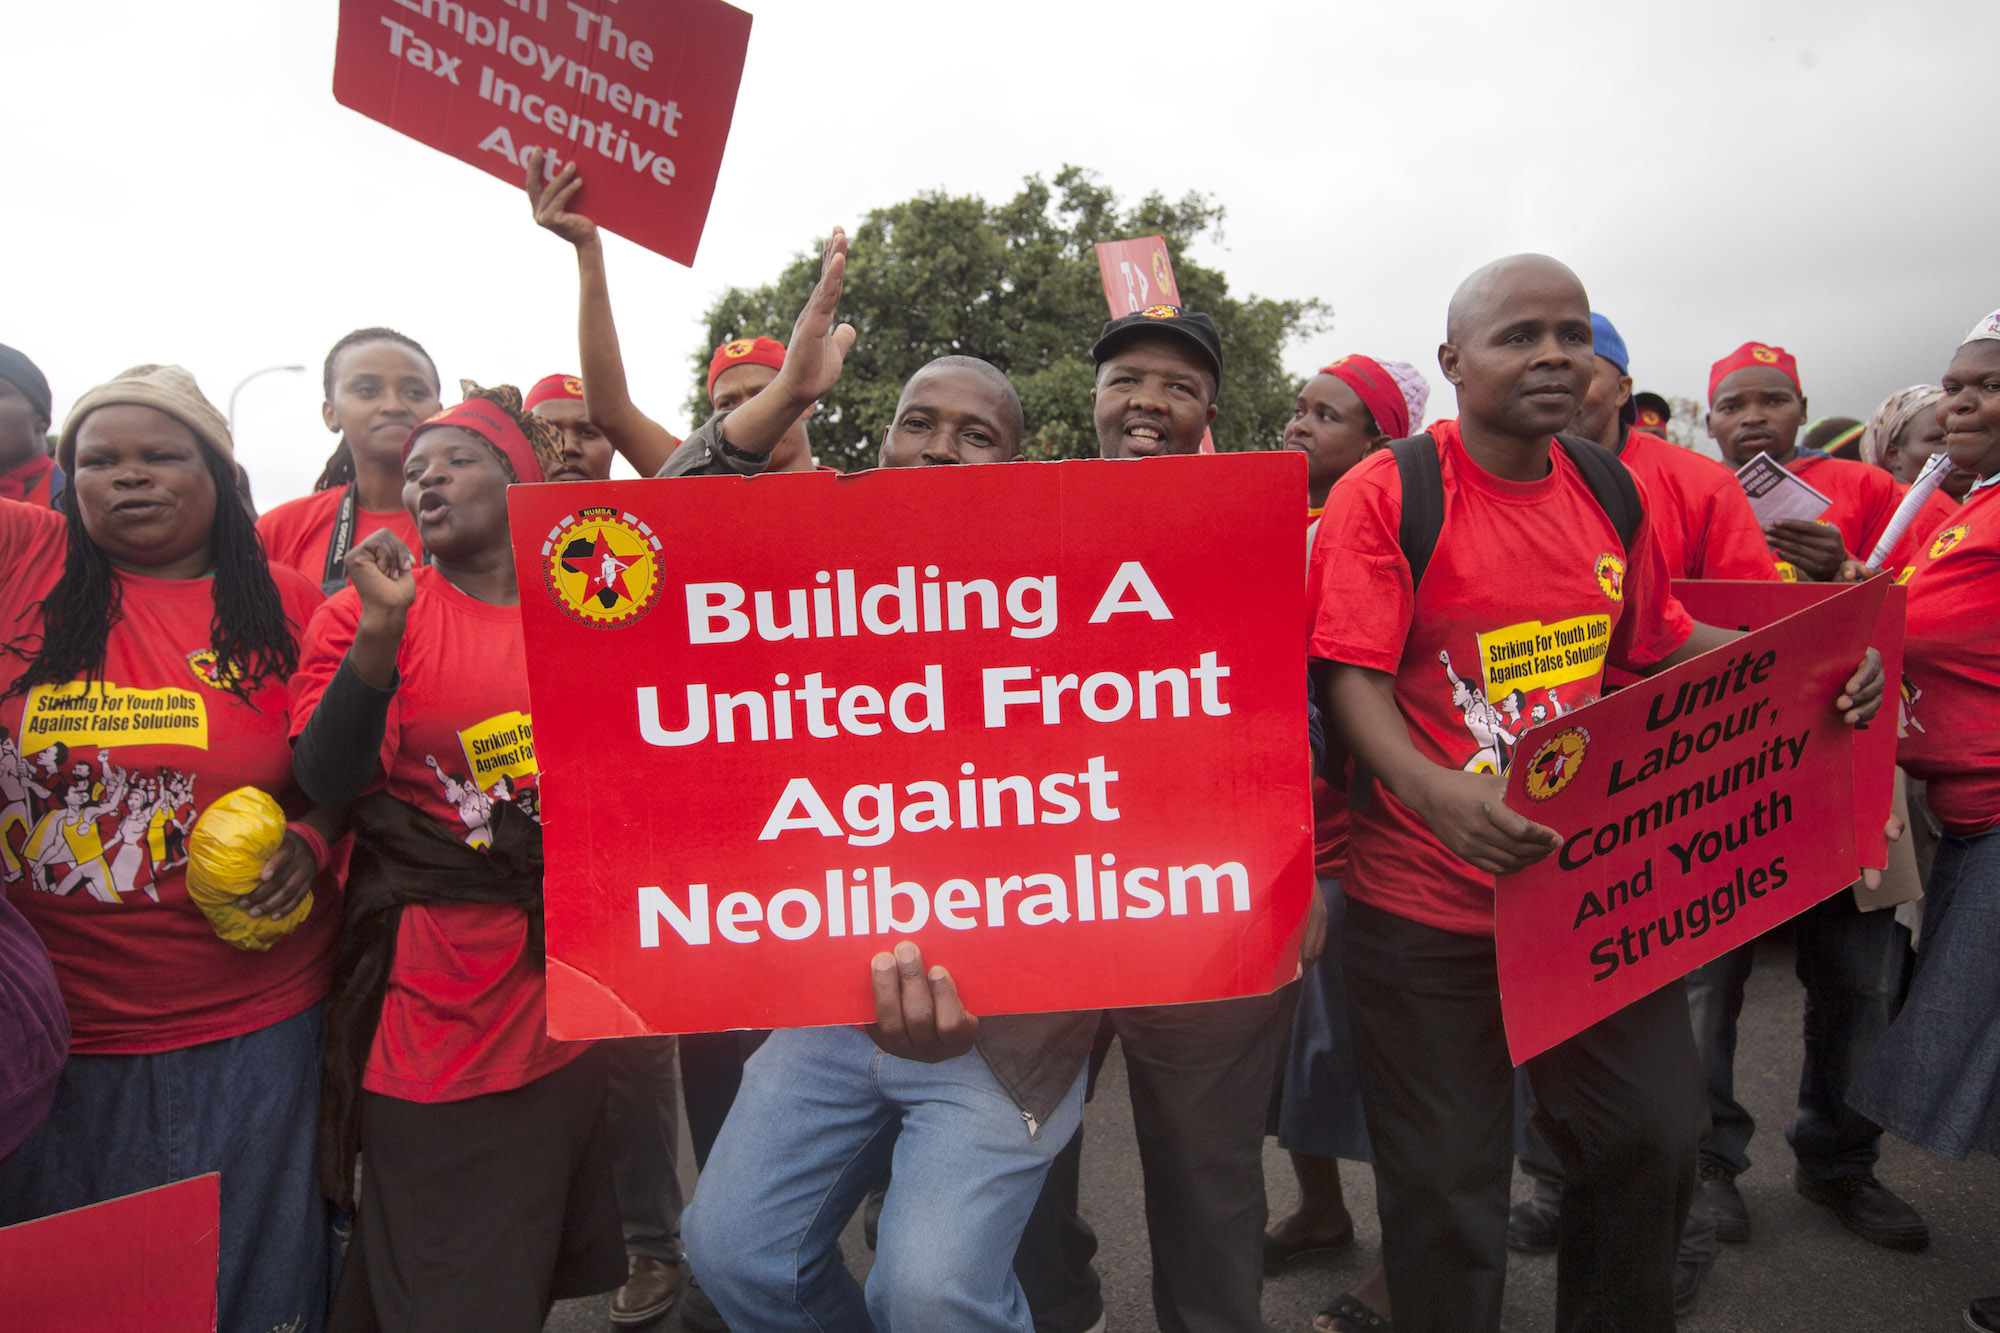 Members of the National Union of Metal Workers and their supporters march in central Cape Town during a general strike, March 19, 2014. (Shachaf Polakow/Activestills.org)